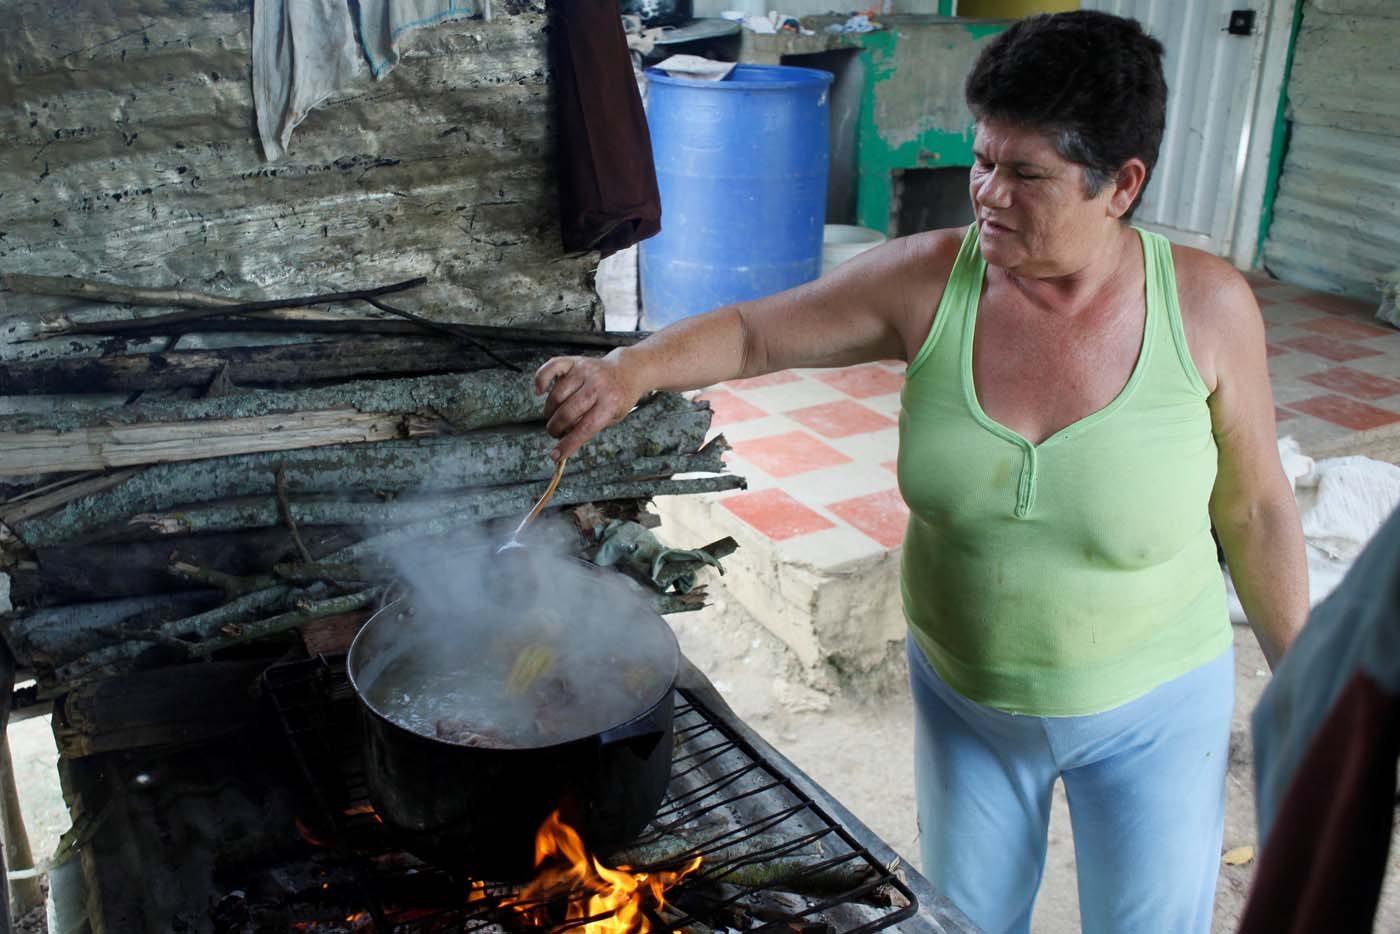 Margarita Rojas cooks the meal using firewood at her house in San Cristobal, Venezuela August 5, 2017. Picture taken August 5, 2017. REUTERS/Luis Parada